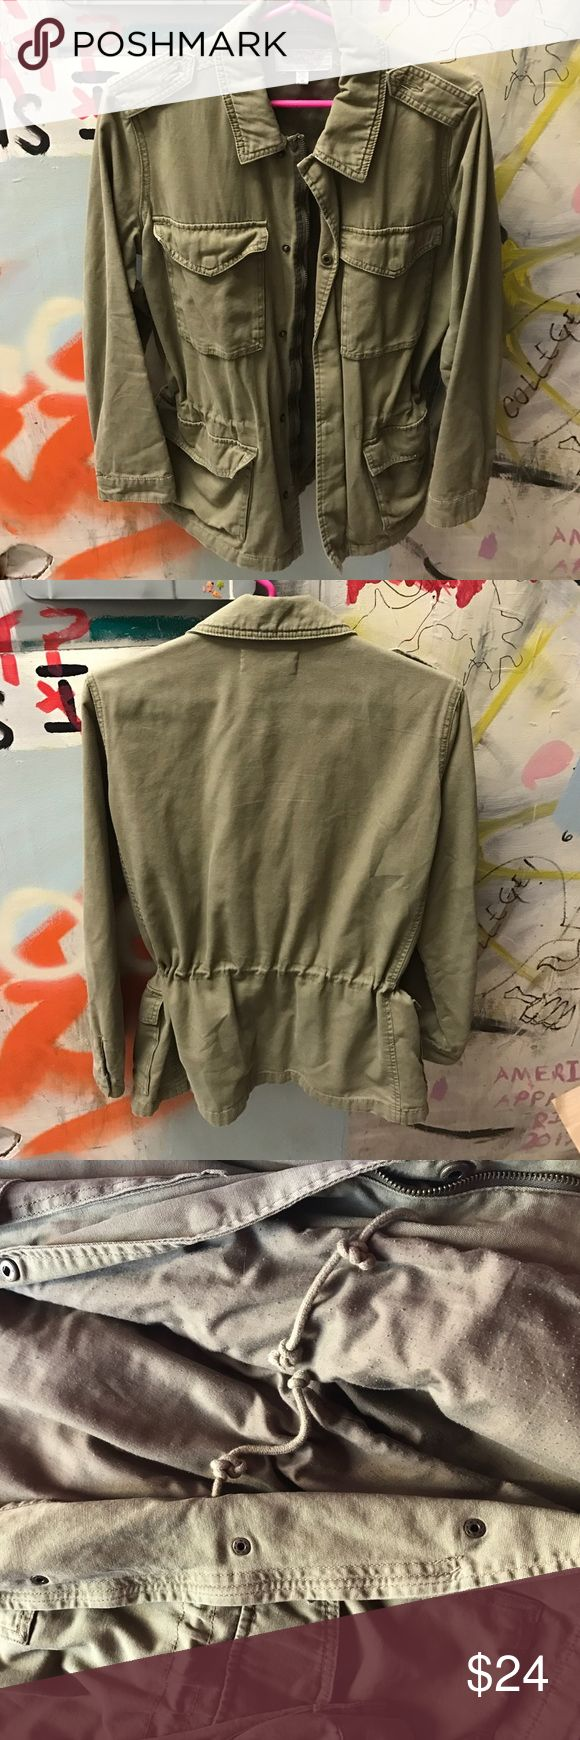 Olive Urban Outfitters drawstring jacket Ecoté jacket in good condition. Straps on shoulder held by safety pins because the buttons fell off. Adjustable drawstrings on inside. Urban Outfitters Jackets & Coats